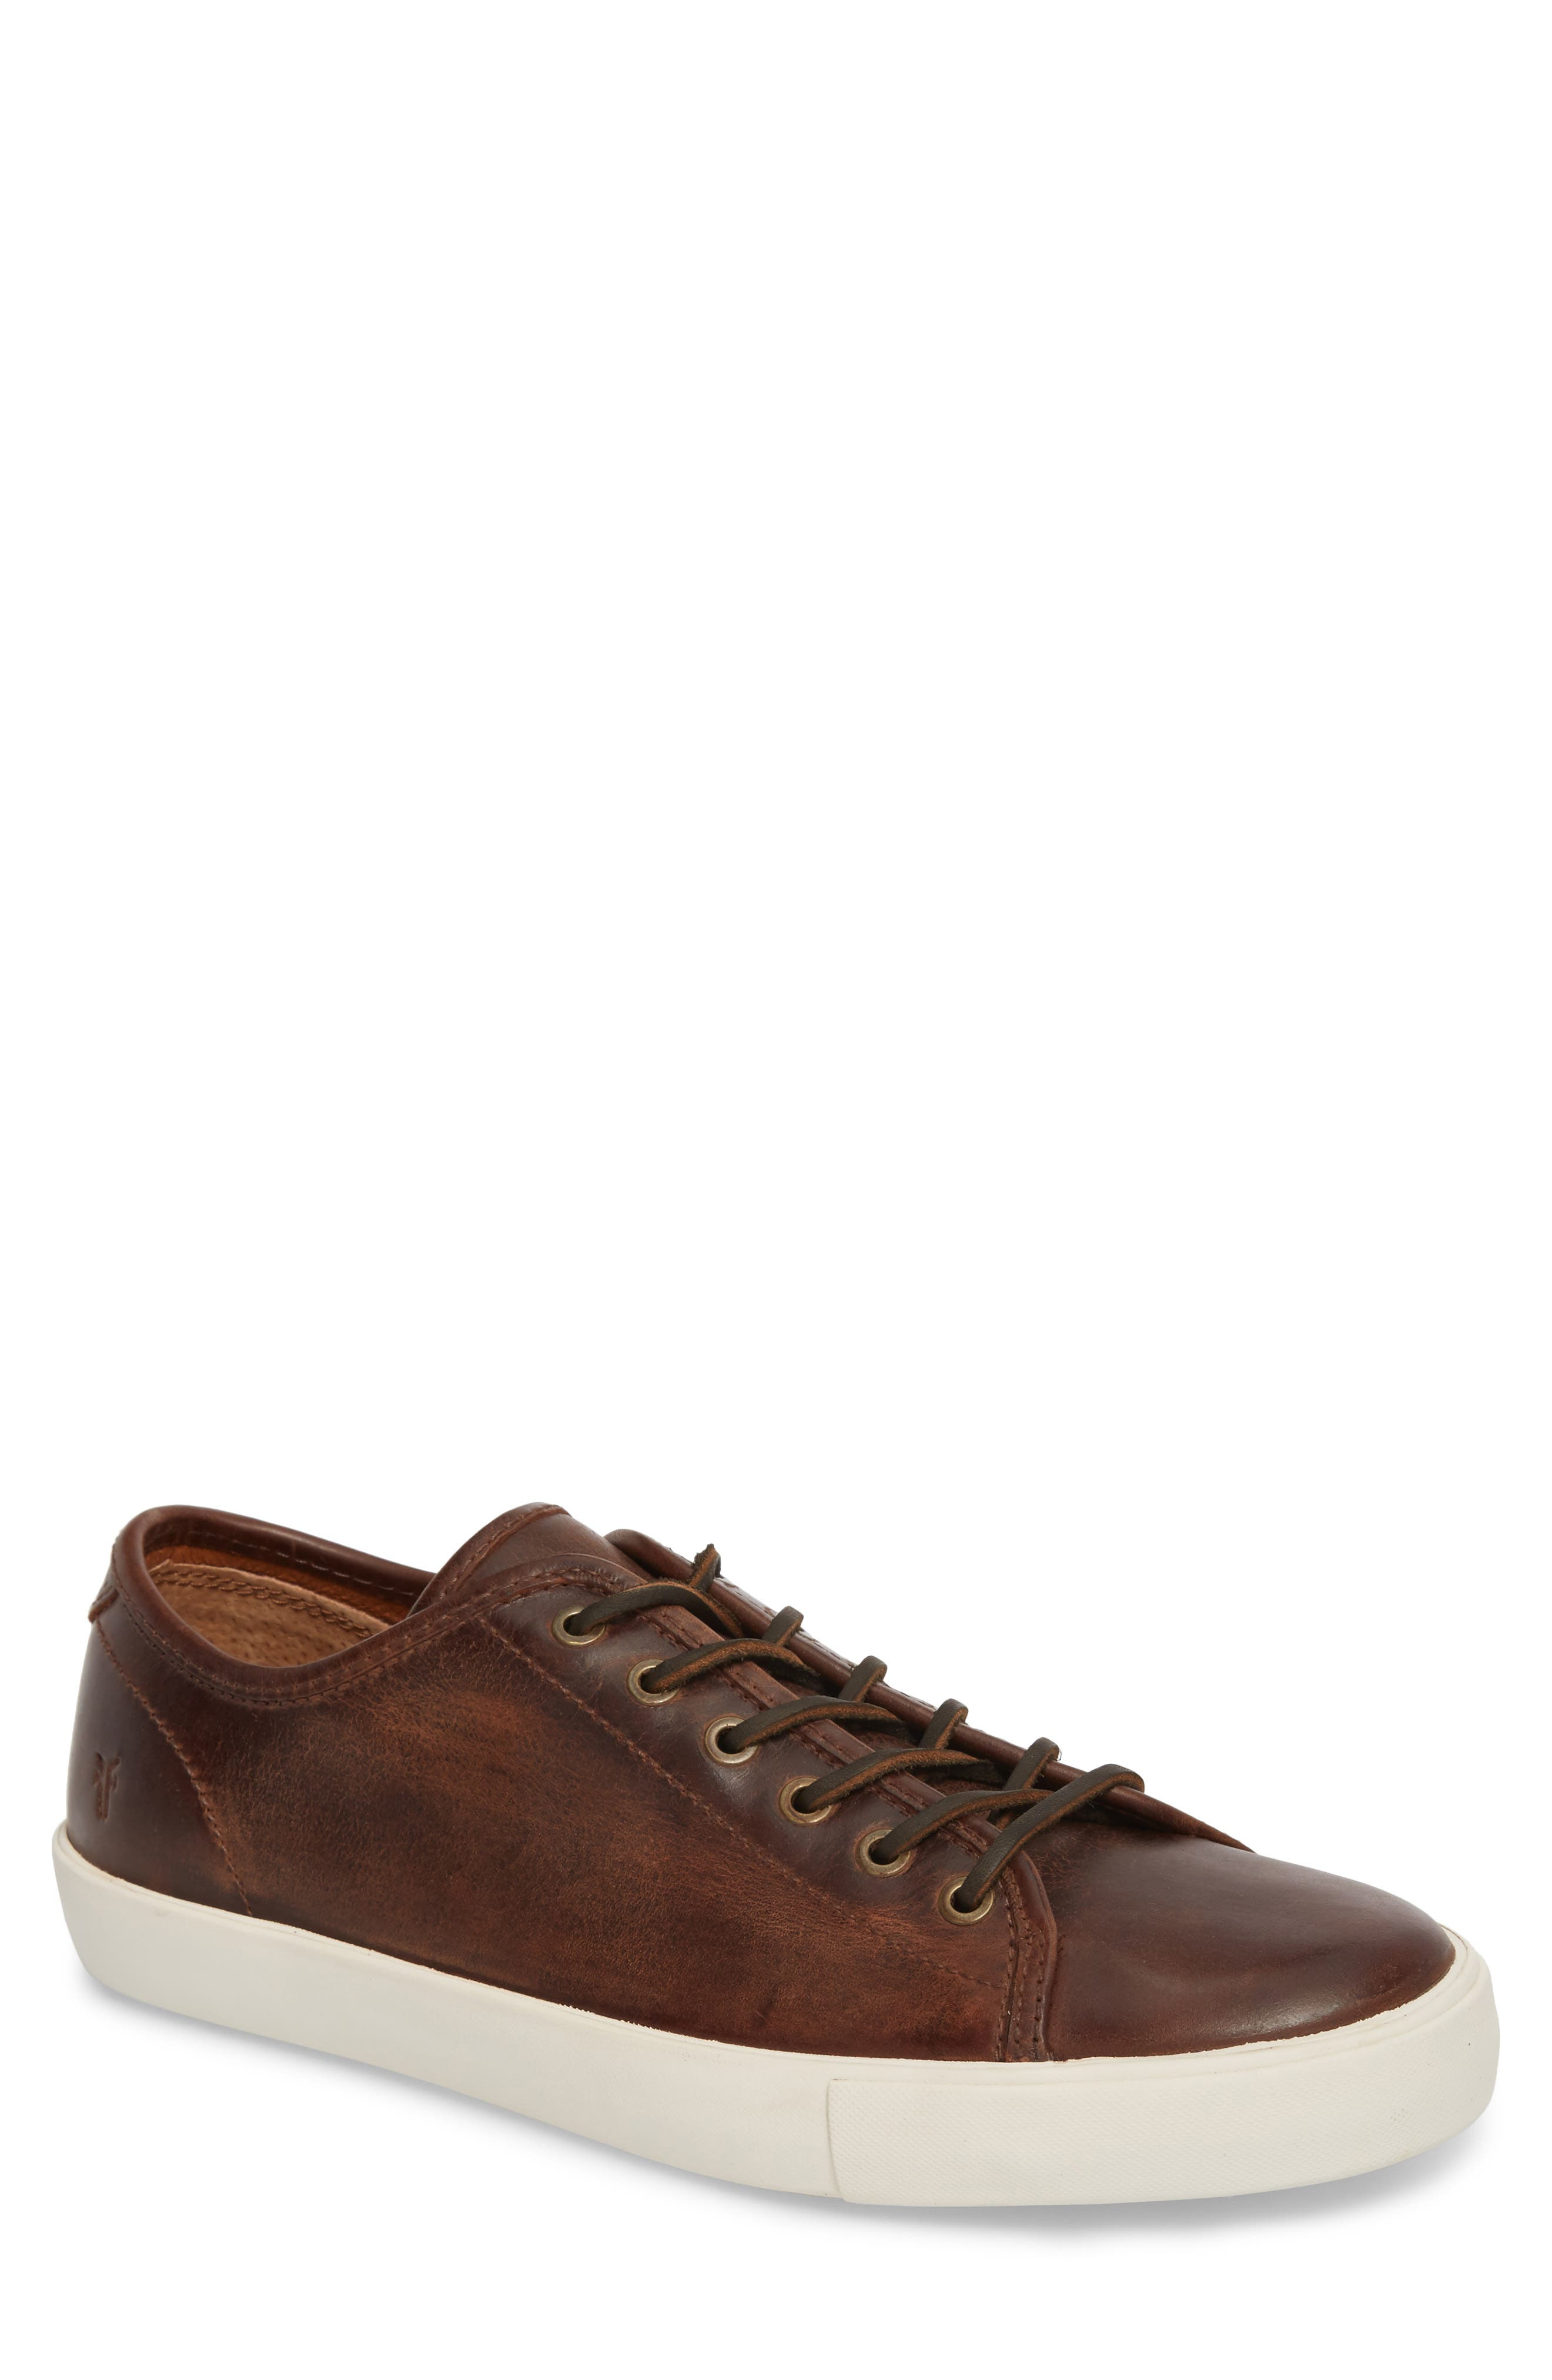 Brett Sneaker,                         Main,                         color, REDWOOD LEATHER